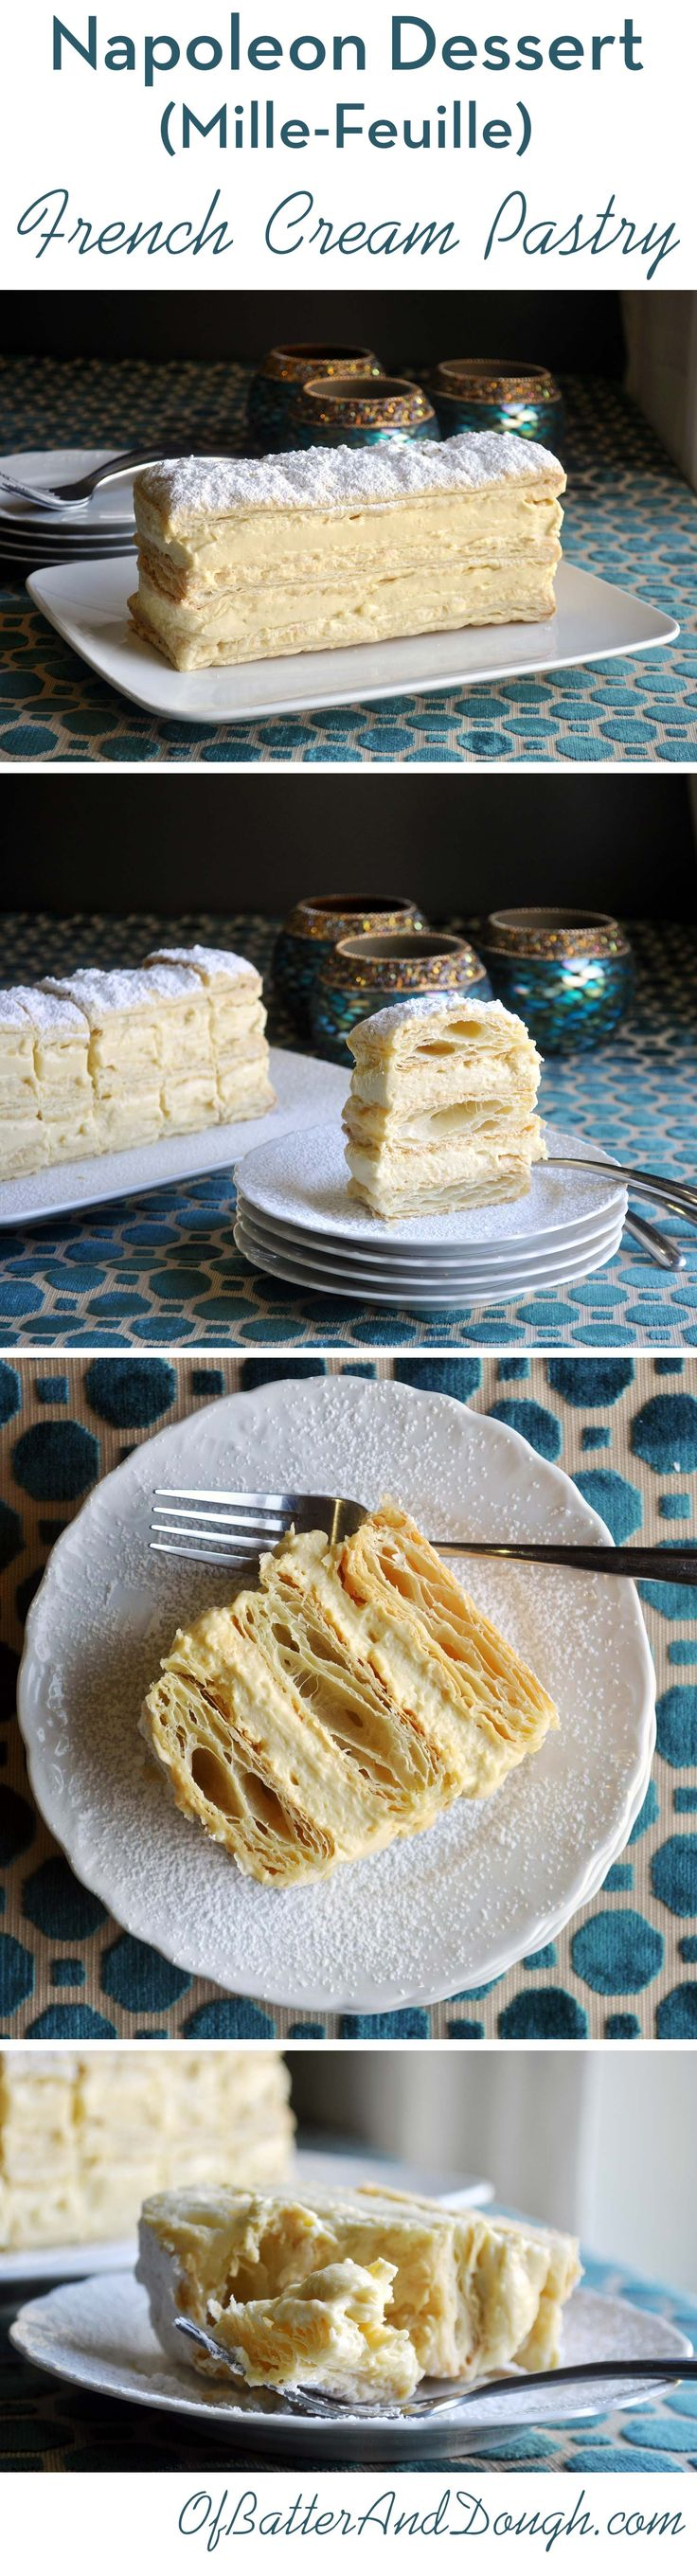 Napoleon Dessert Recipe French Pastry Mille Feuille Cream Pastry